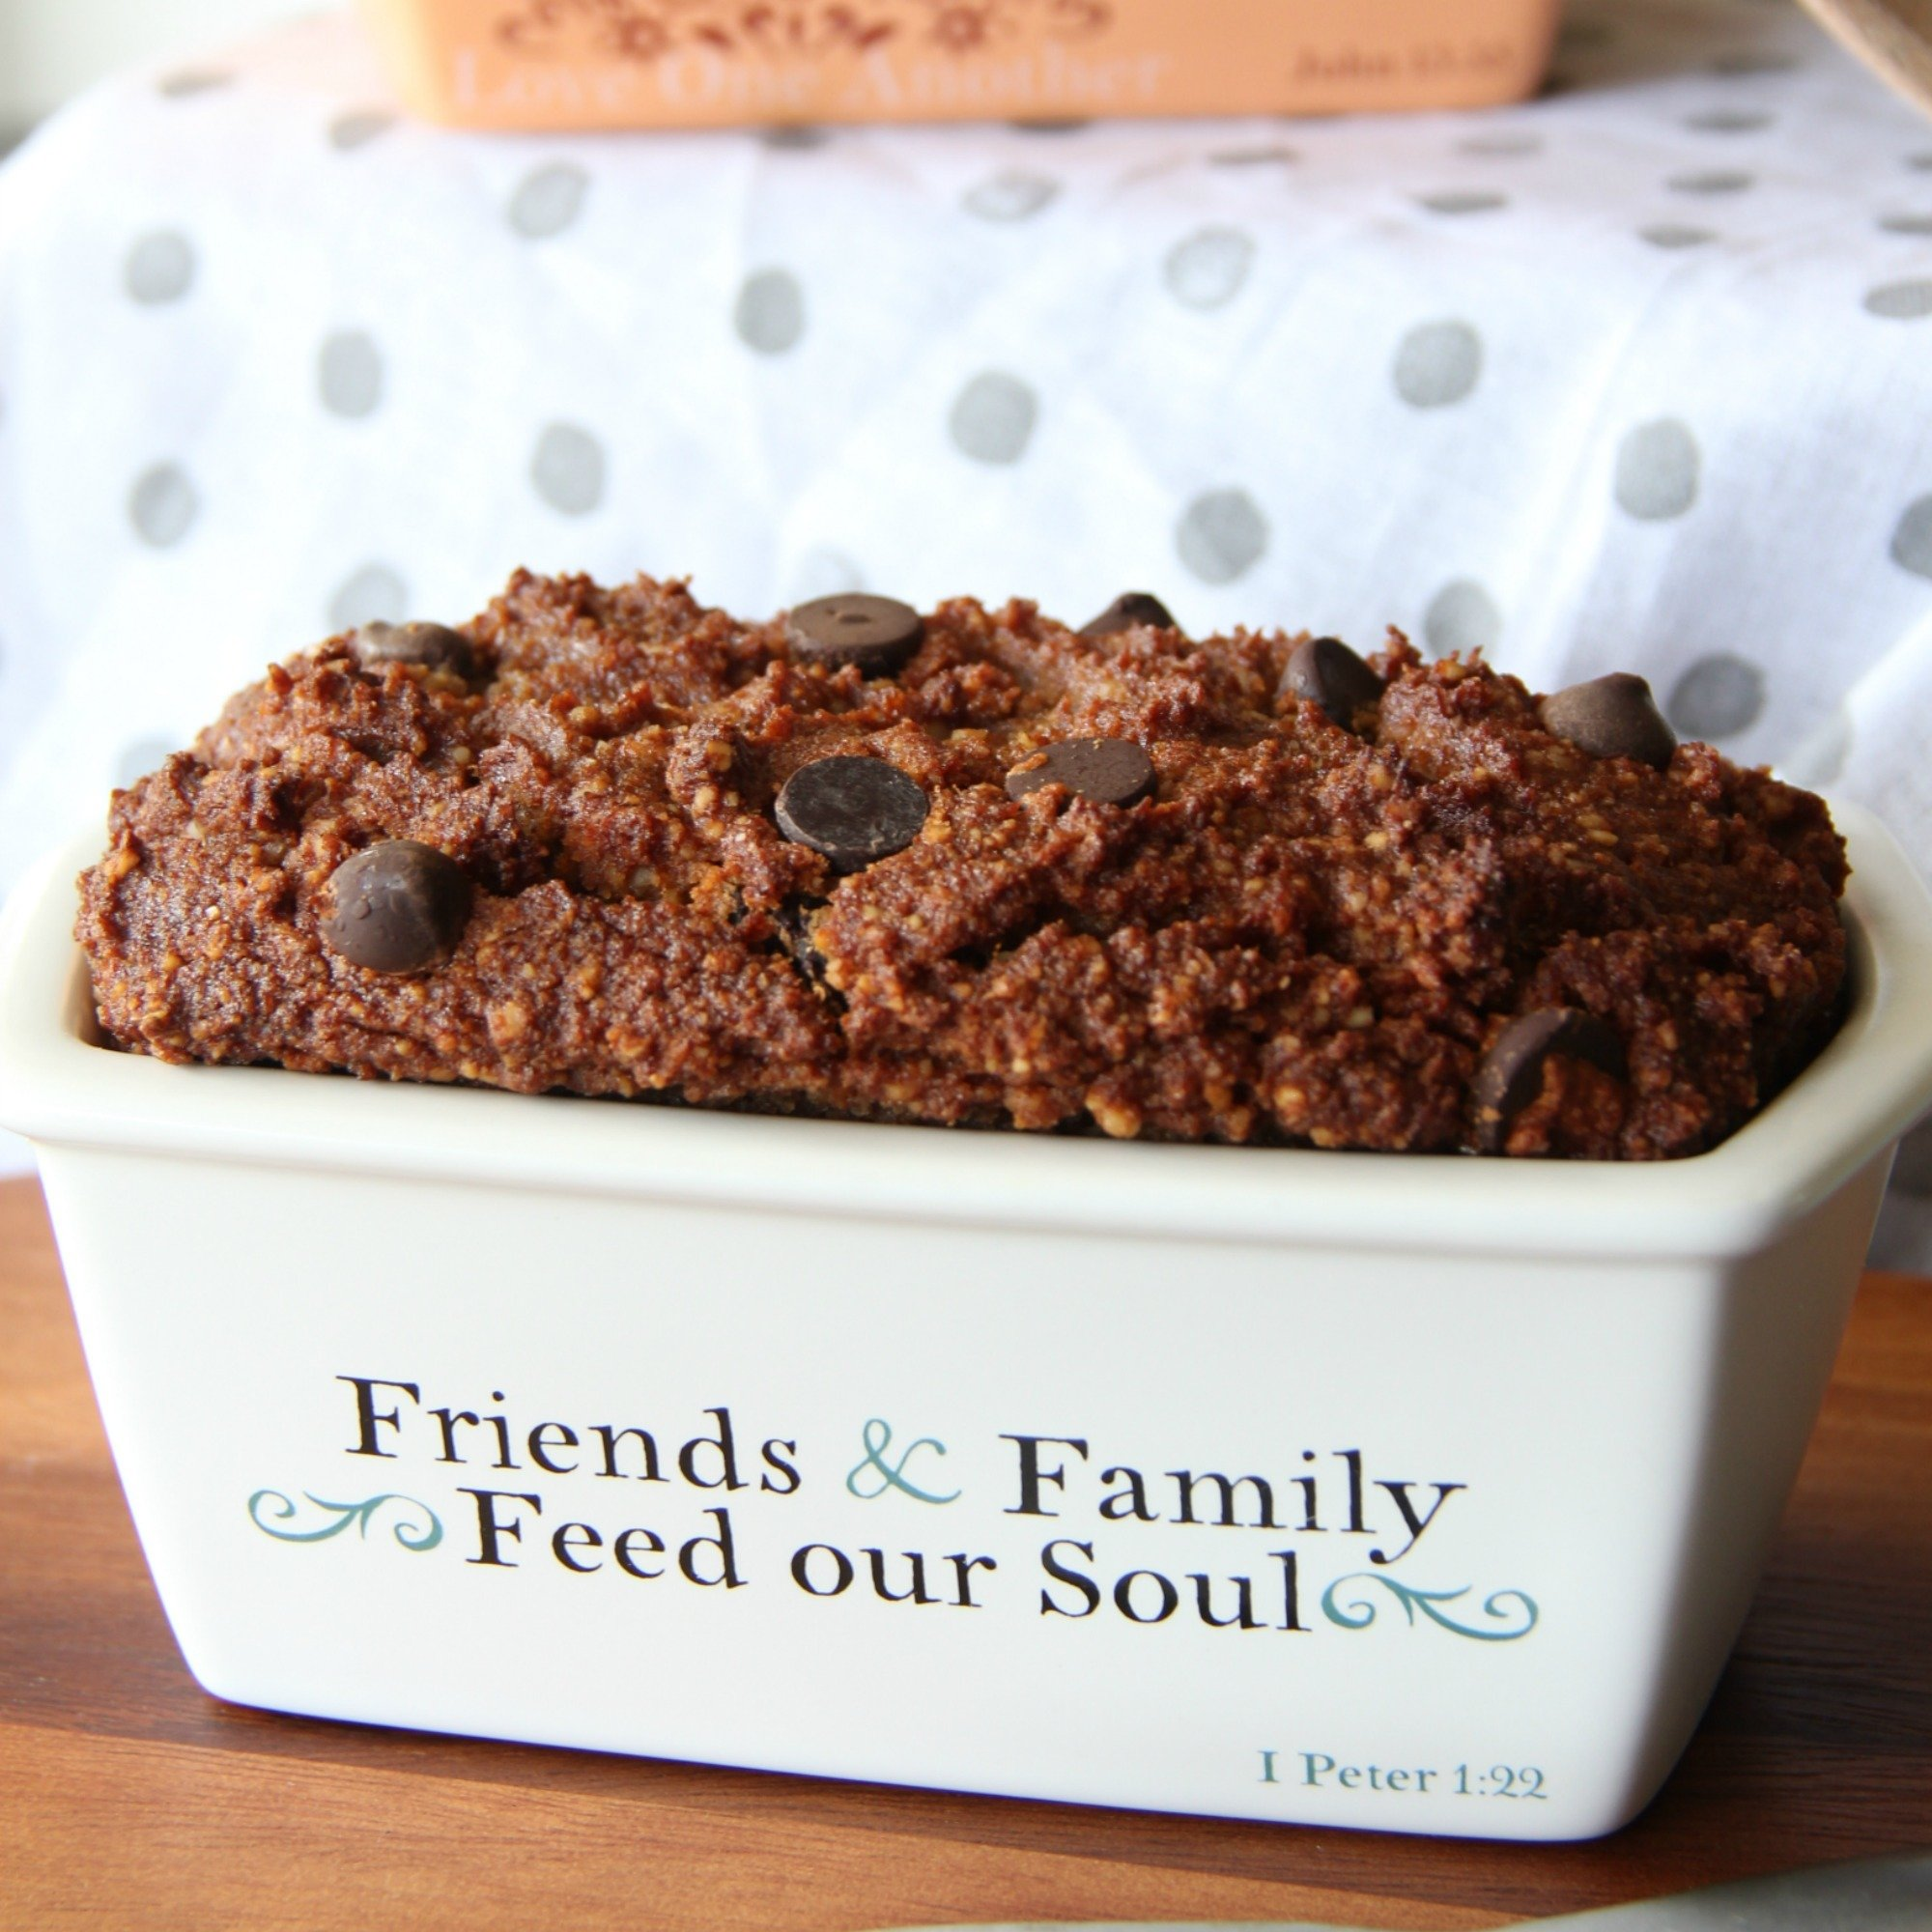 Friends & Family Petite Bread Loaf Dish 00012